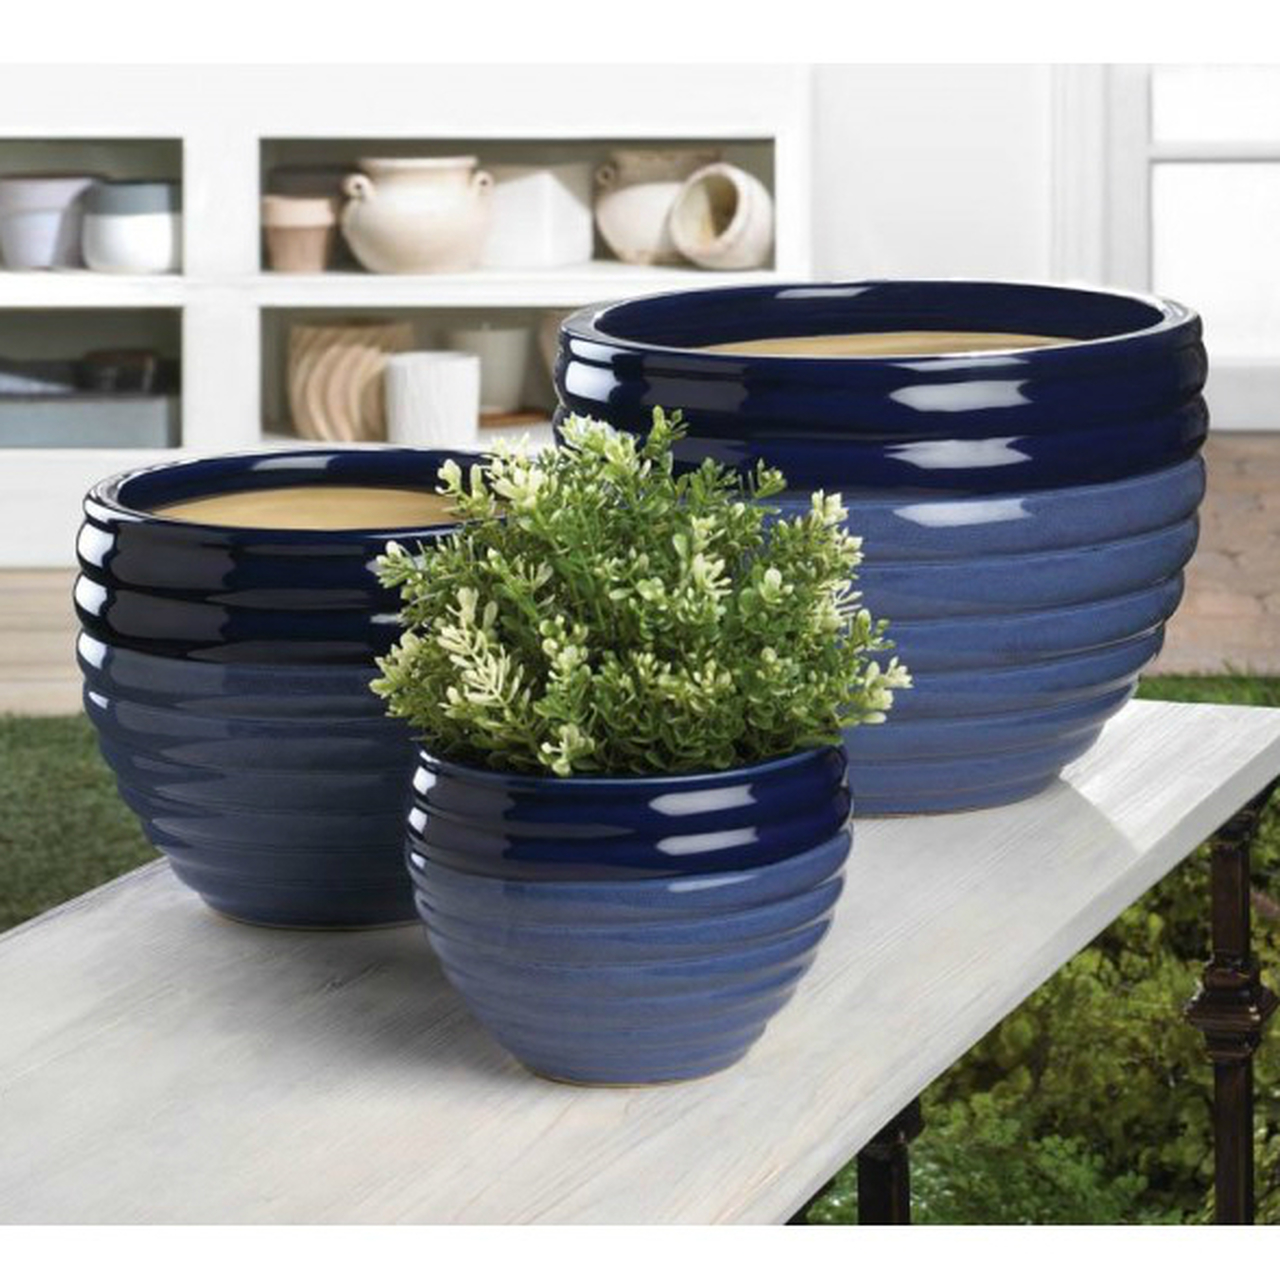 Two-Tone Blue Ceramic Planter Set